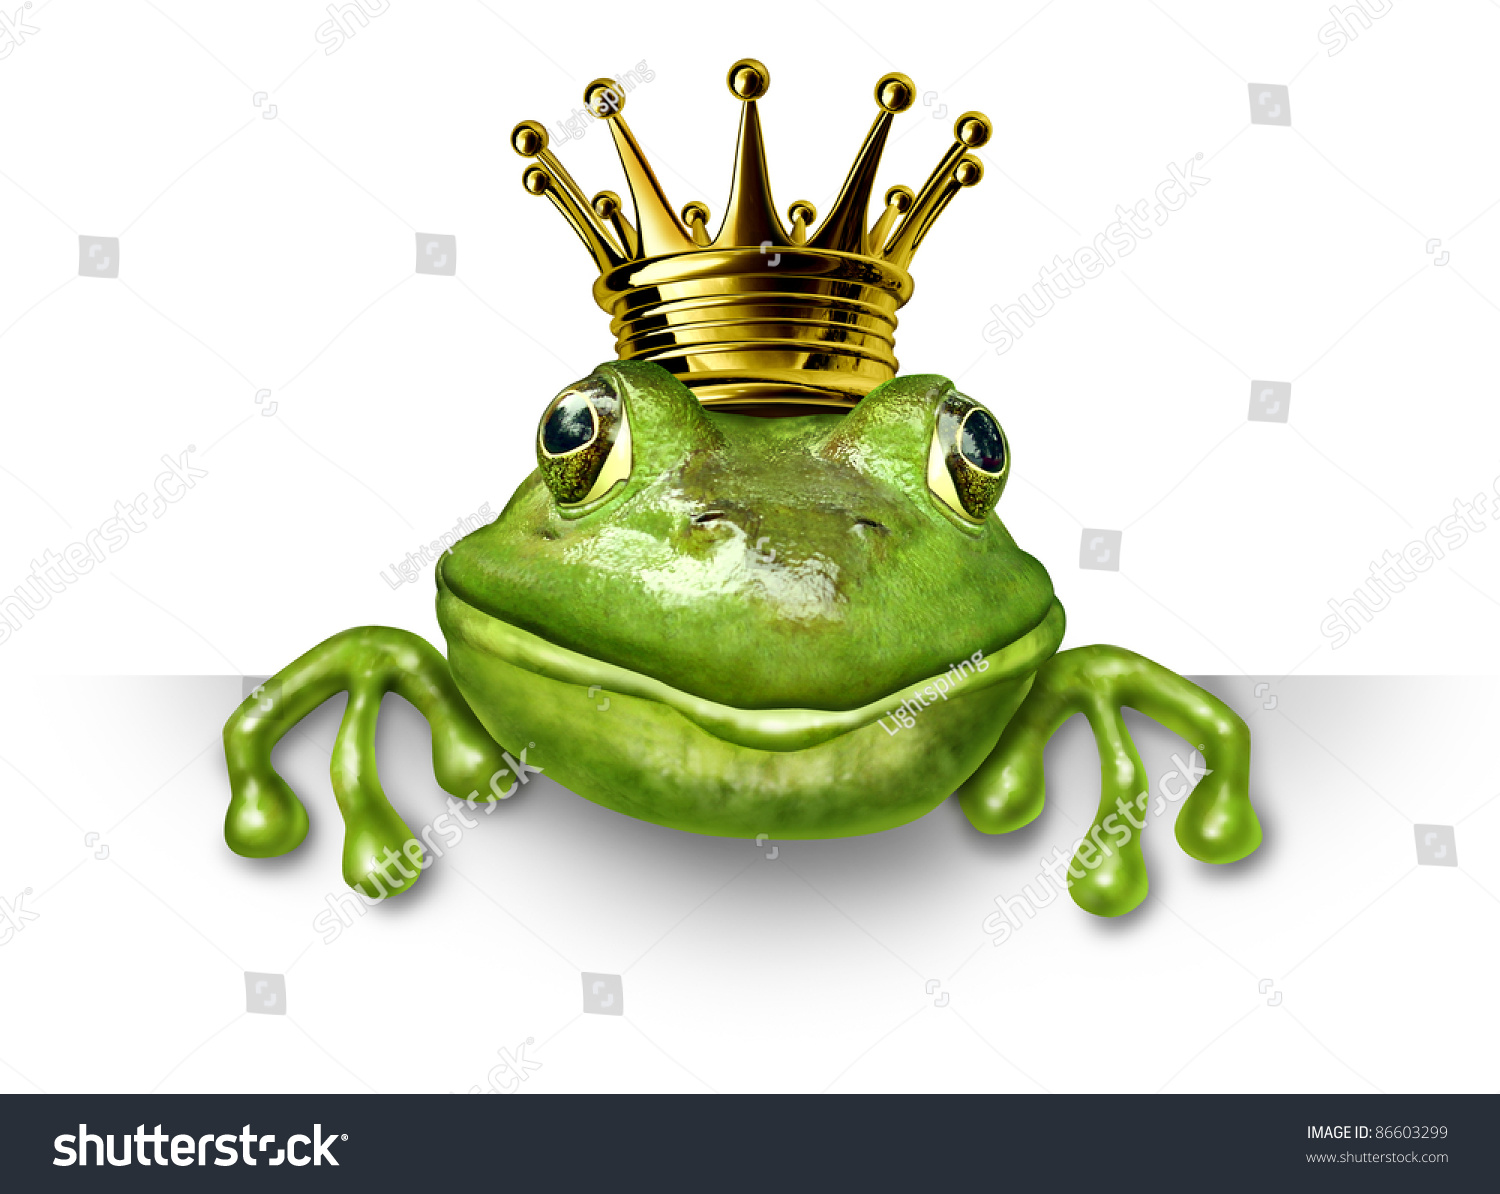 Frog prince with small gold crown holding a blank sign for Frog transformation